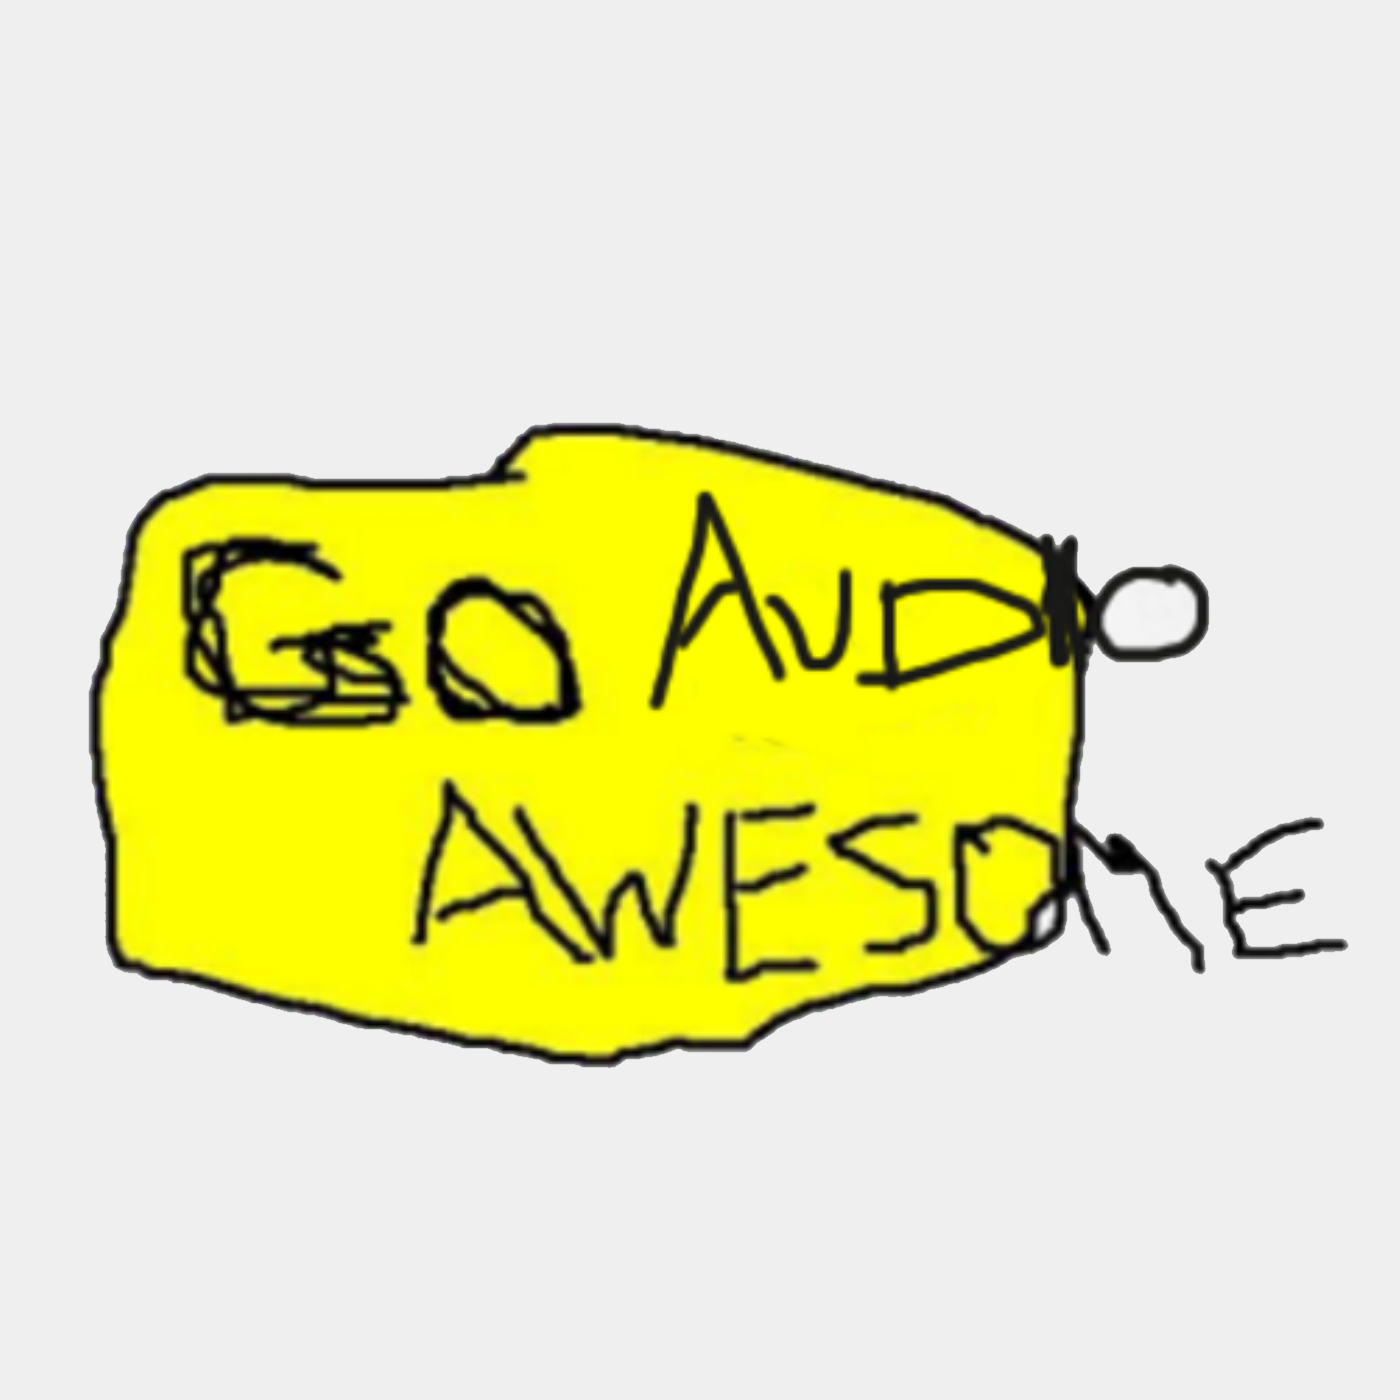 Go Audio Awesome